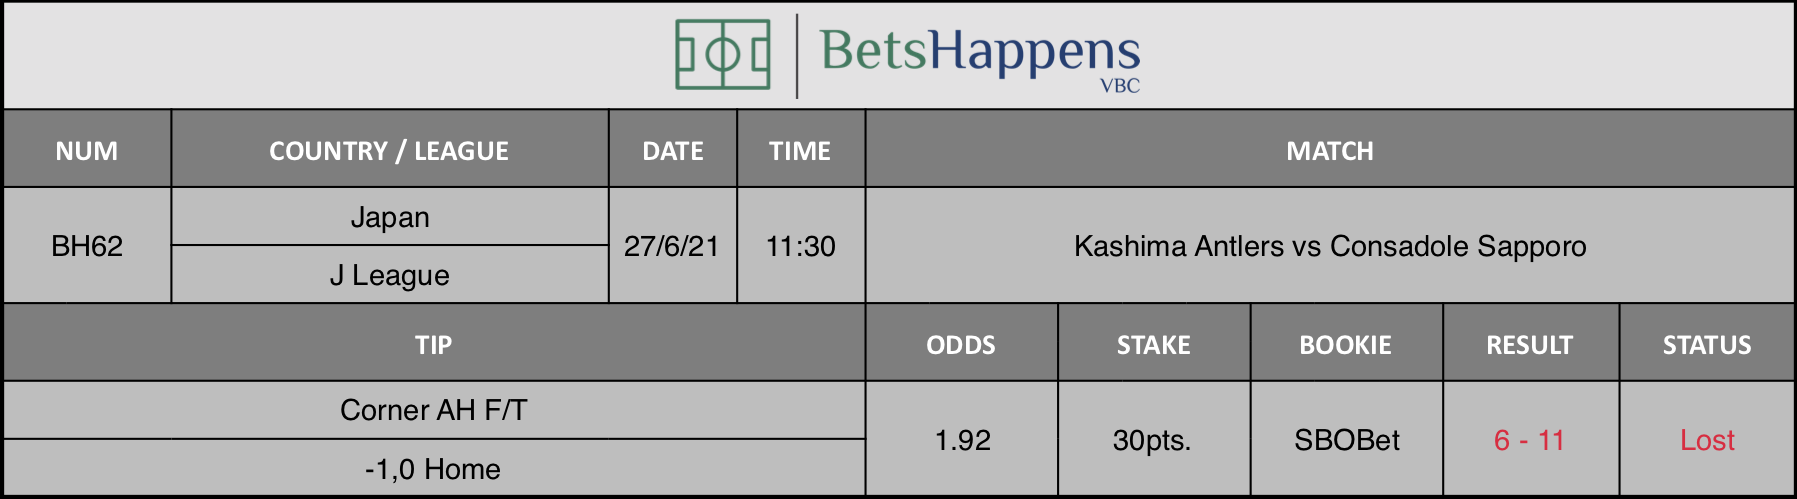 Results of our tip for the Kashima Antlers vs Consadole Sapporo match Corner AH F/T -1,0 Home is recommended.